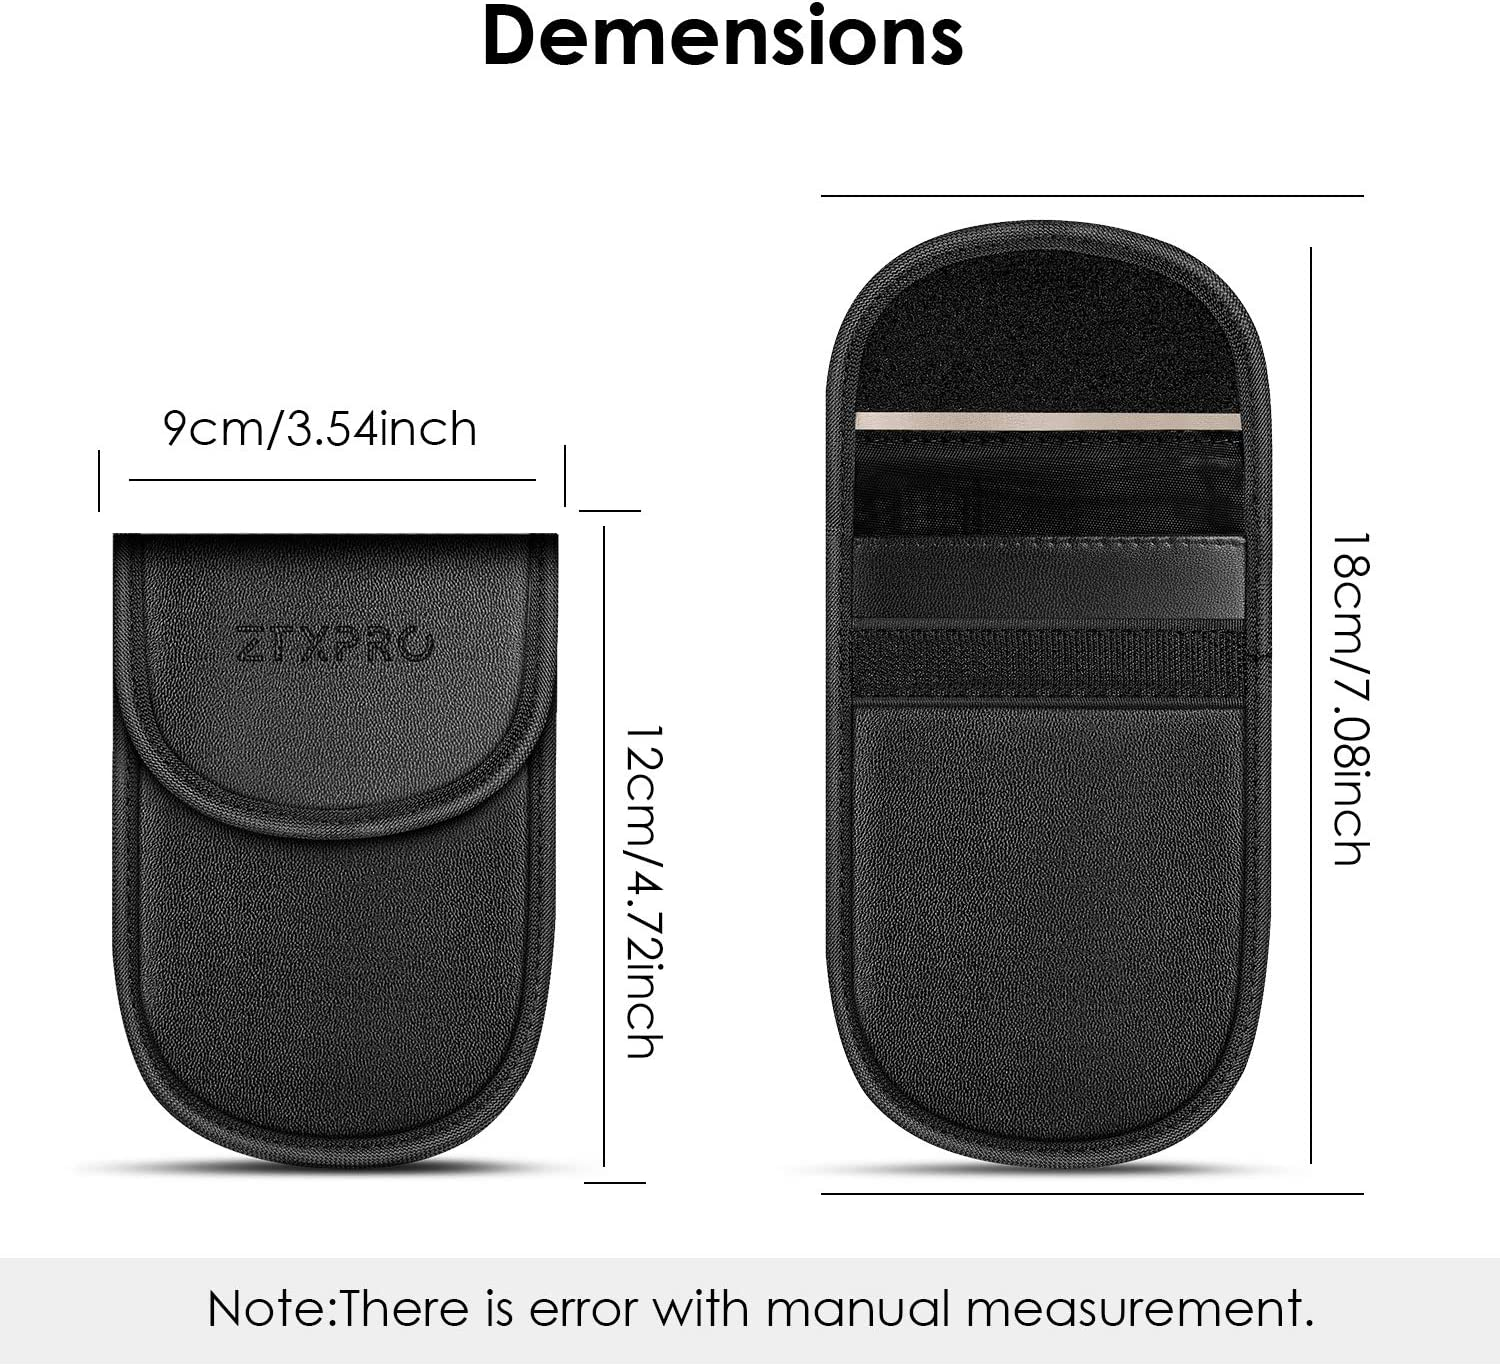 Faraday Key Fob Protector Anti Theft Pouch ZTXPRO Faraday Bag for Blocking Keyless Entry Fob Guard Anti-Theft Key Fob Protector RFID//NFC Blocking PU Leather Black 2 Pack